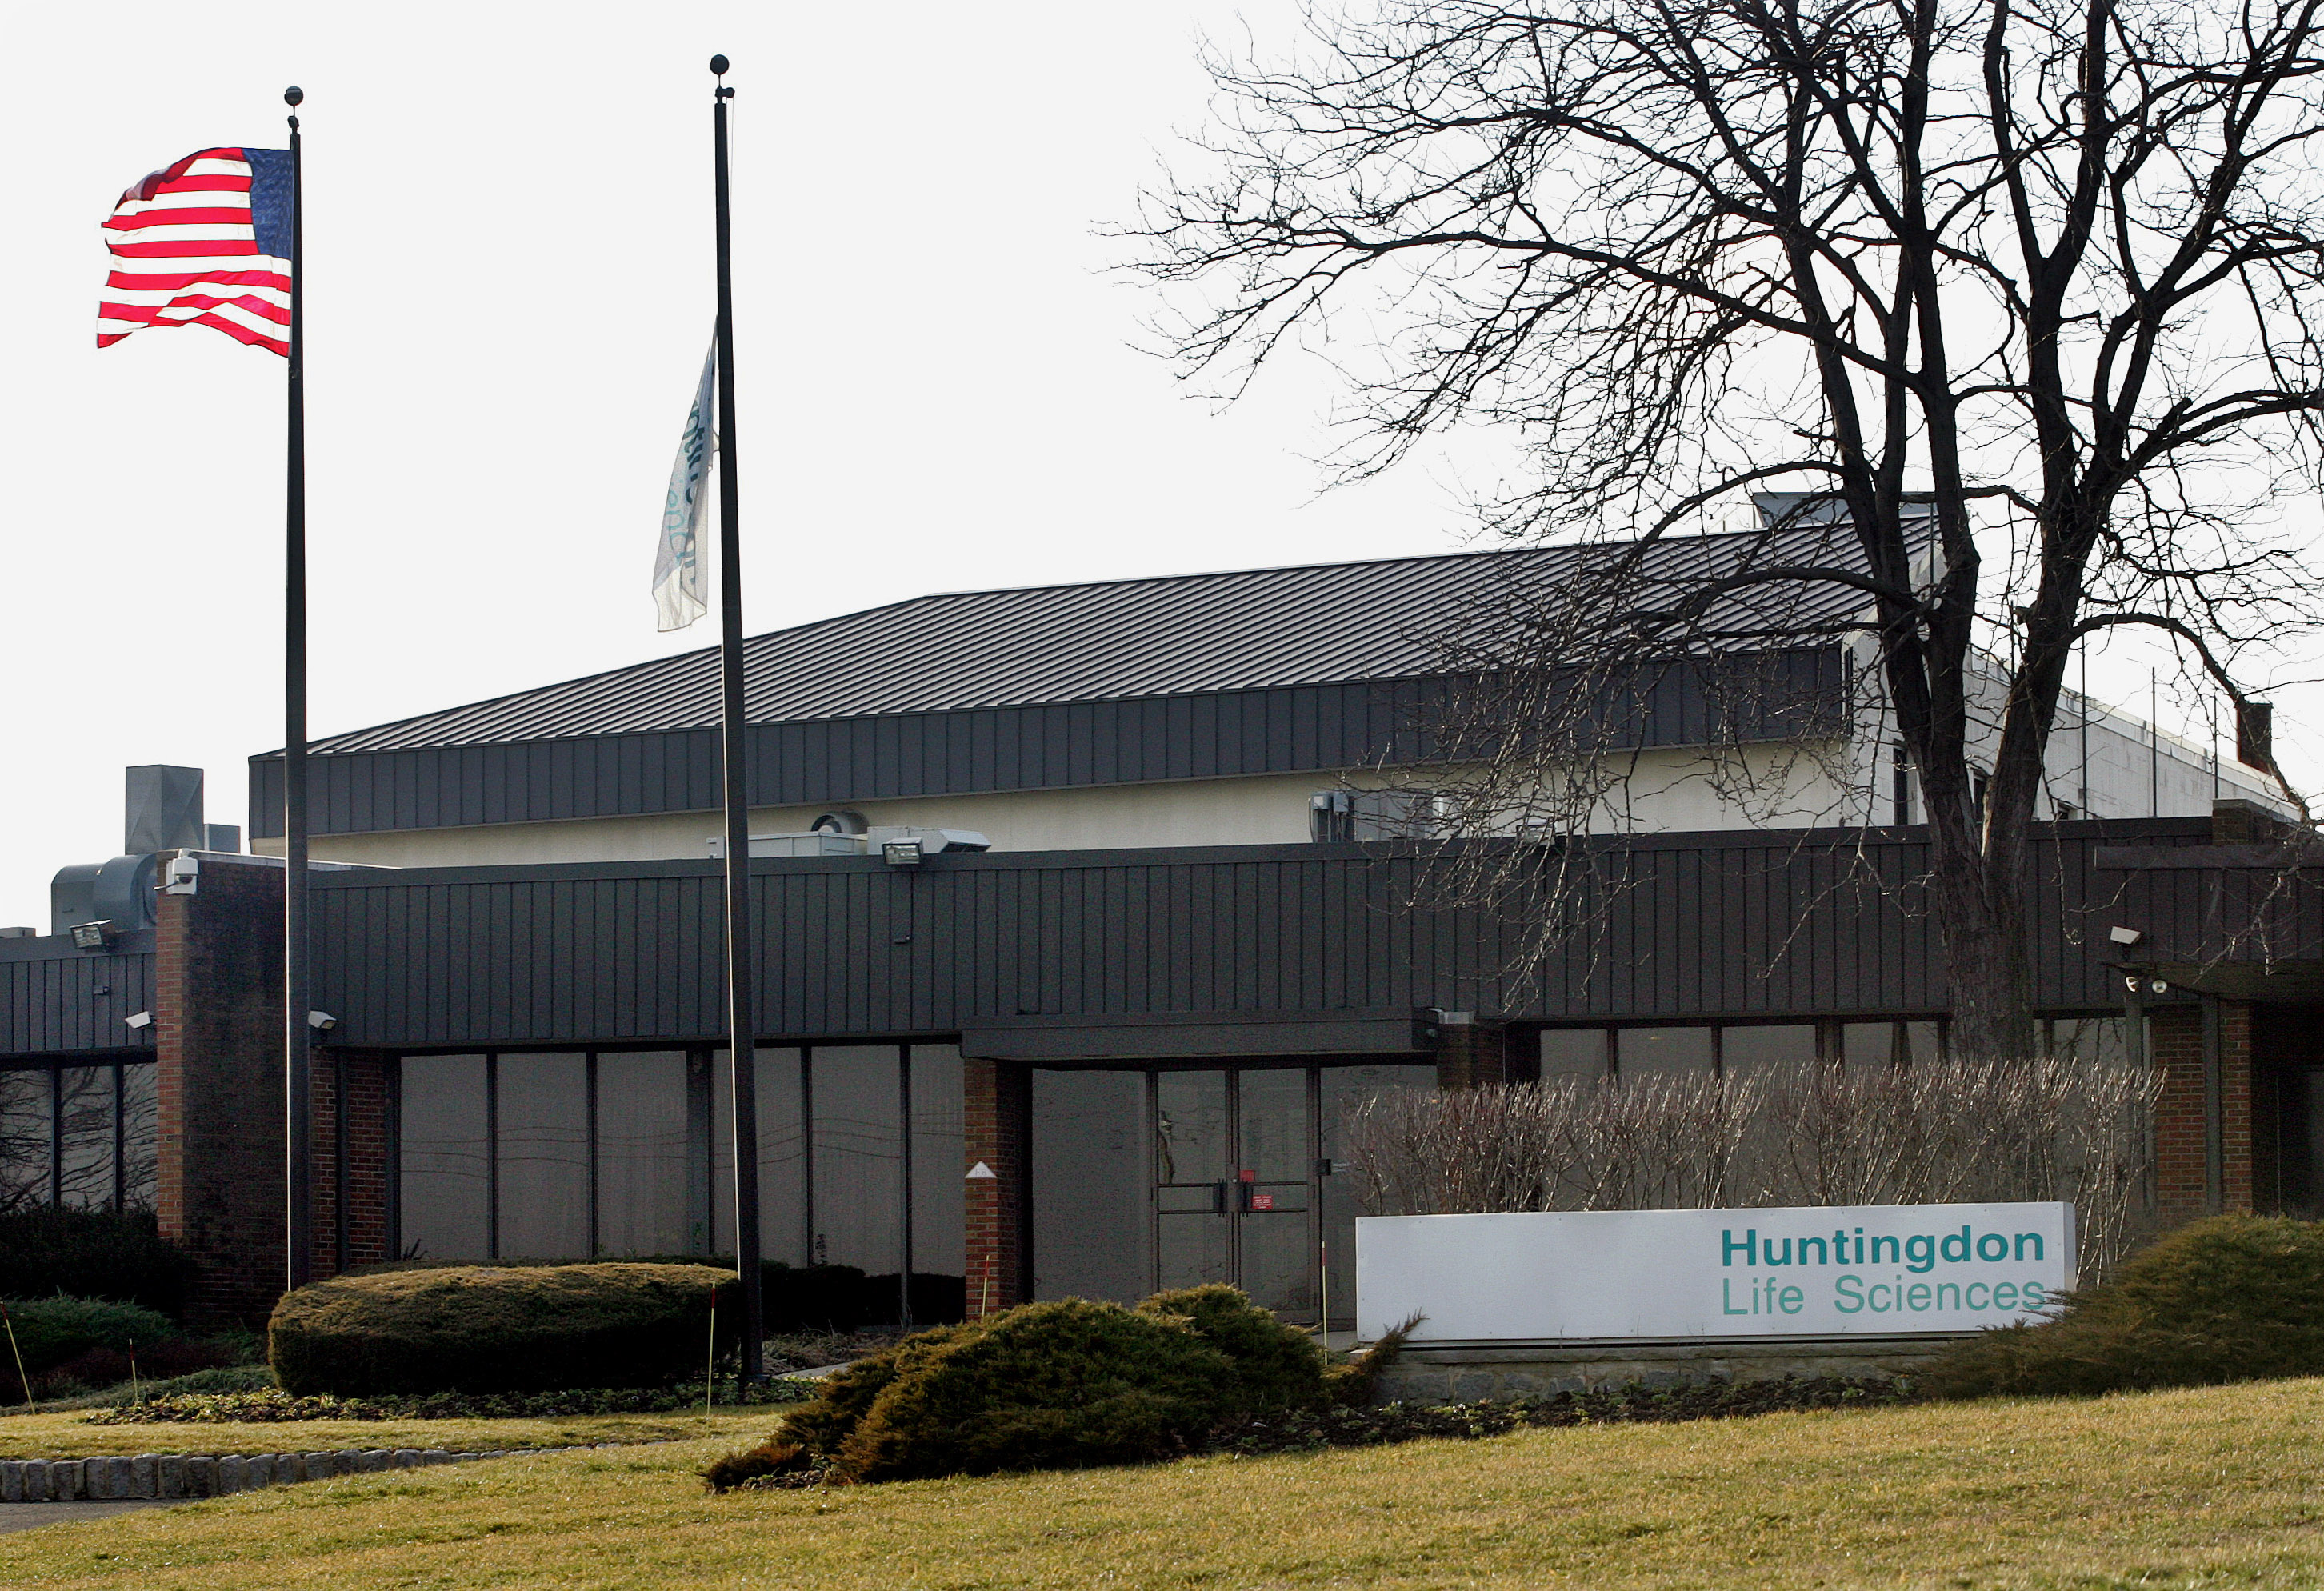 **ADVANCE FOR MONDAY, FEB. 6, 2006**Huntington Life Sciences in East Millstone, N.J., can be seen Friday, Feb. 3, 2006. Seven members of the Philadelphia-based group, Stop Huntingdon Animal Cruelty, which goes by the acronym SHAC, were arrested in May 2004 and charged with animal enterprise terrorism, conspiracy and interstate stalking, part of a plan to drive Huntingdon Life Sciences out of business. Charges against one of the defendants were dropped; the other six are to stand trial in Superior Court, where jury selection begins on Monday.  (AP Photo/Mel Evans)